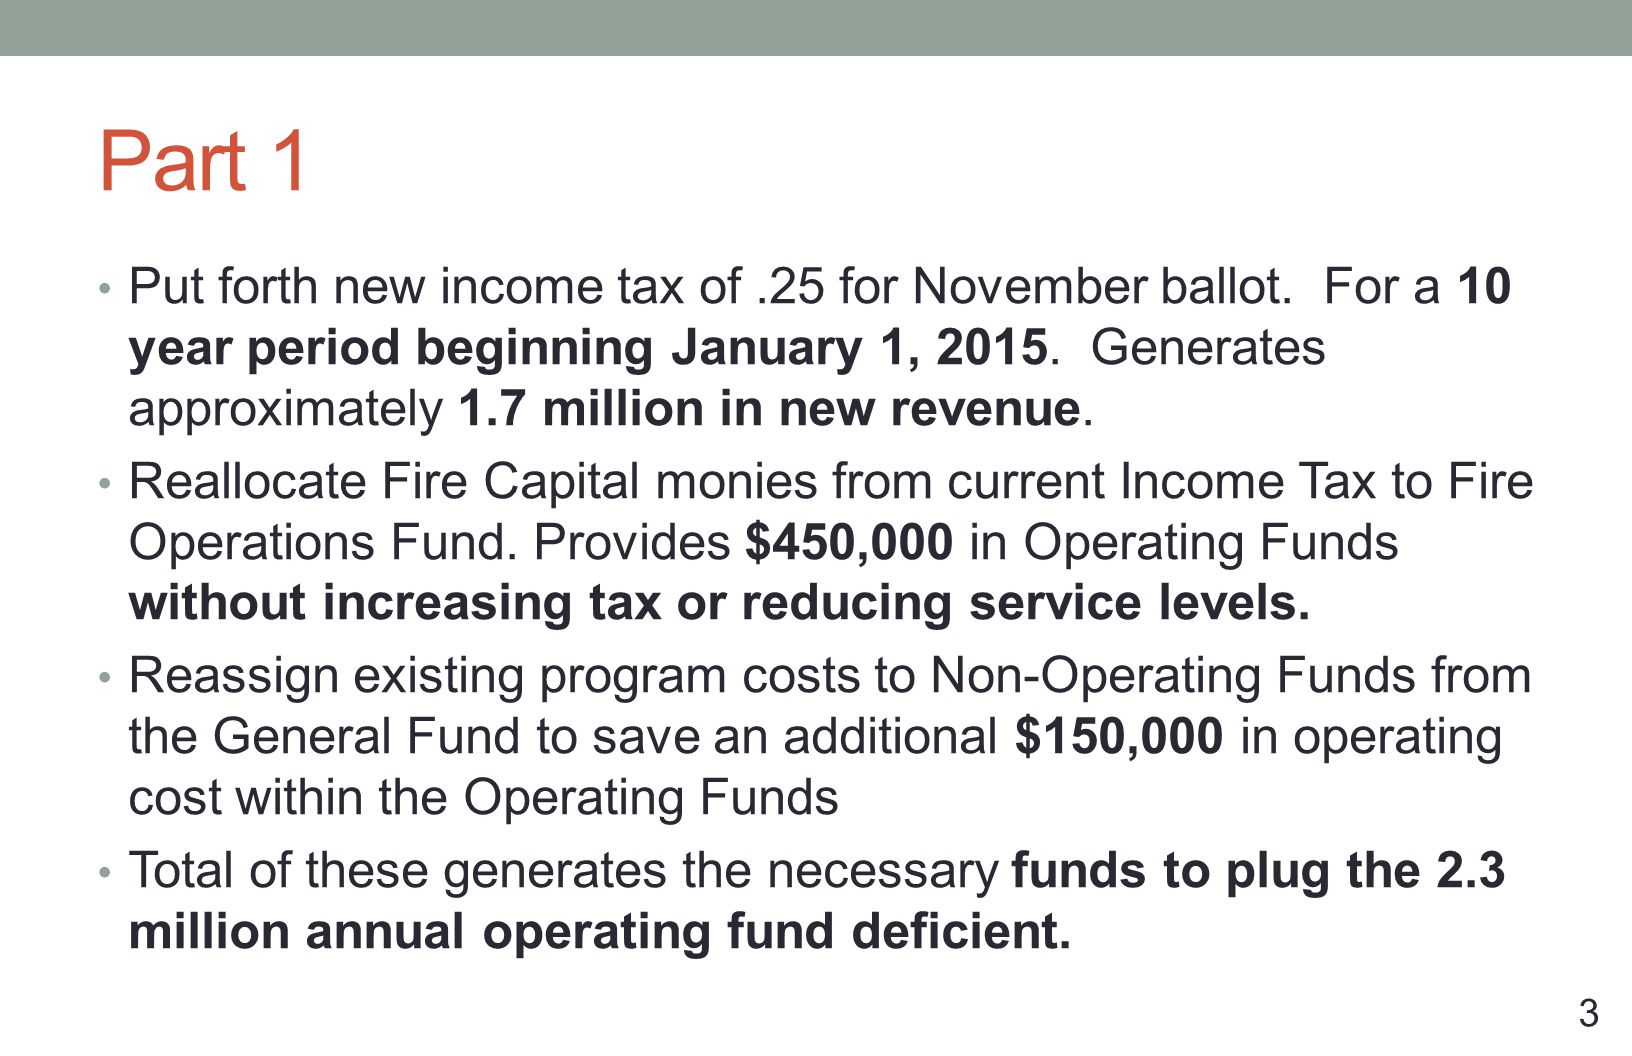 Part 1 Put forth new income tax of.25 for November ballot. For a 10 year period beginning January 1, 2015. Generates approximately 1.7 million in new